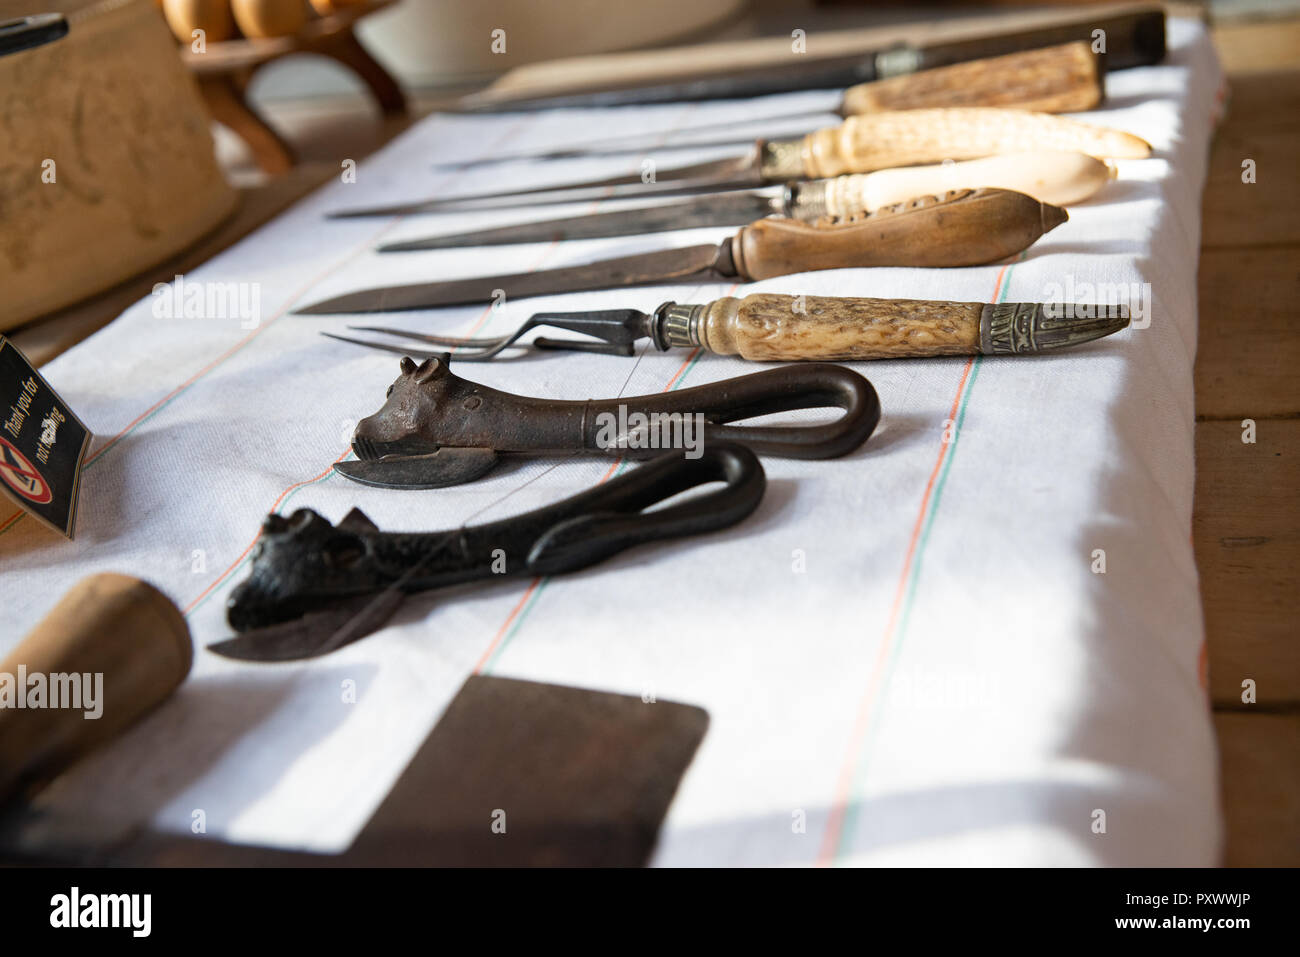 An array of Victorian or earlier kitchen utensils, openers, knives, forks and other equipment laid out neatly on a cloth at Lanhydrock, Cornwall - Stock Image